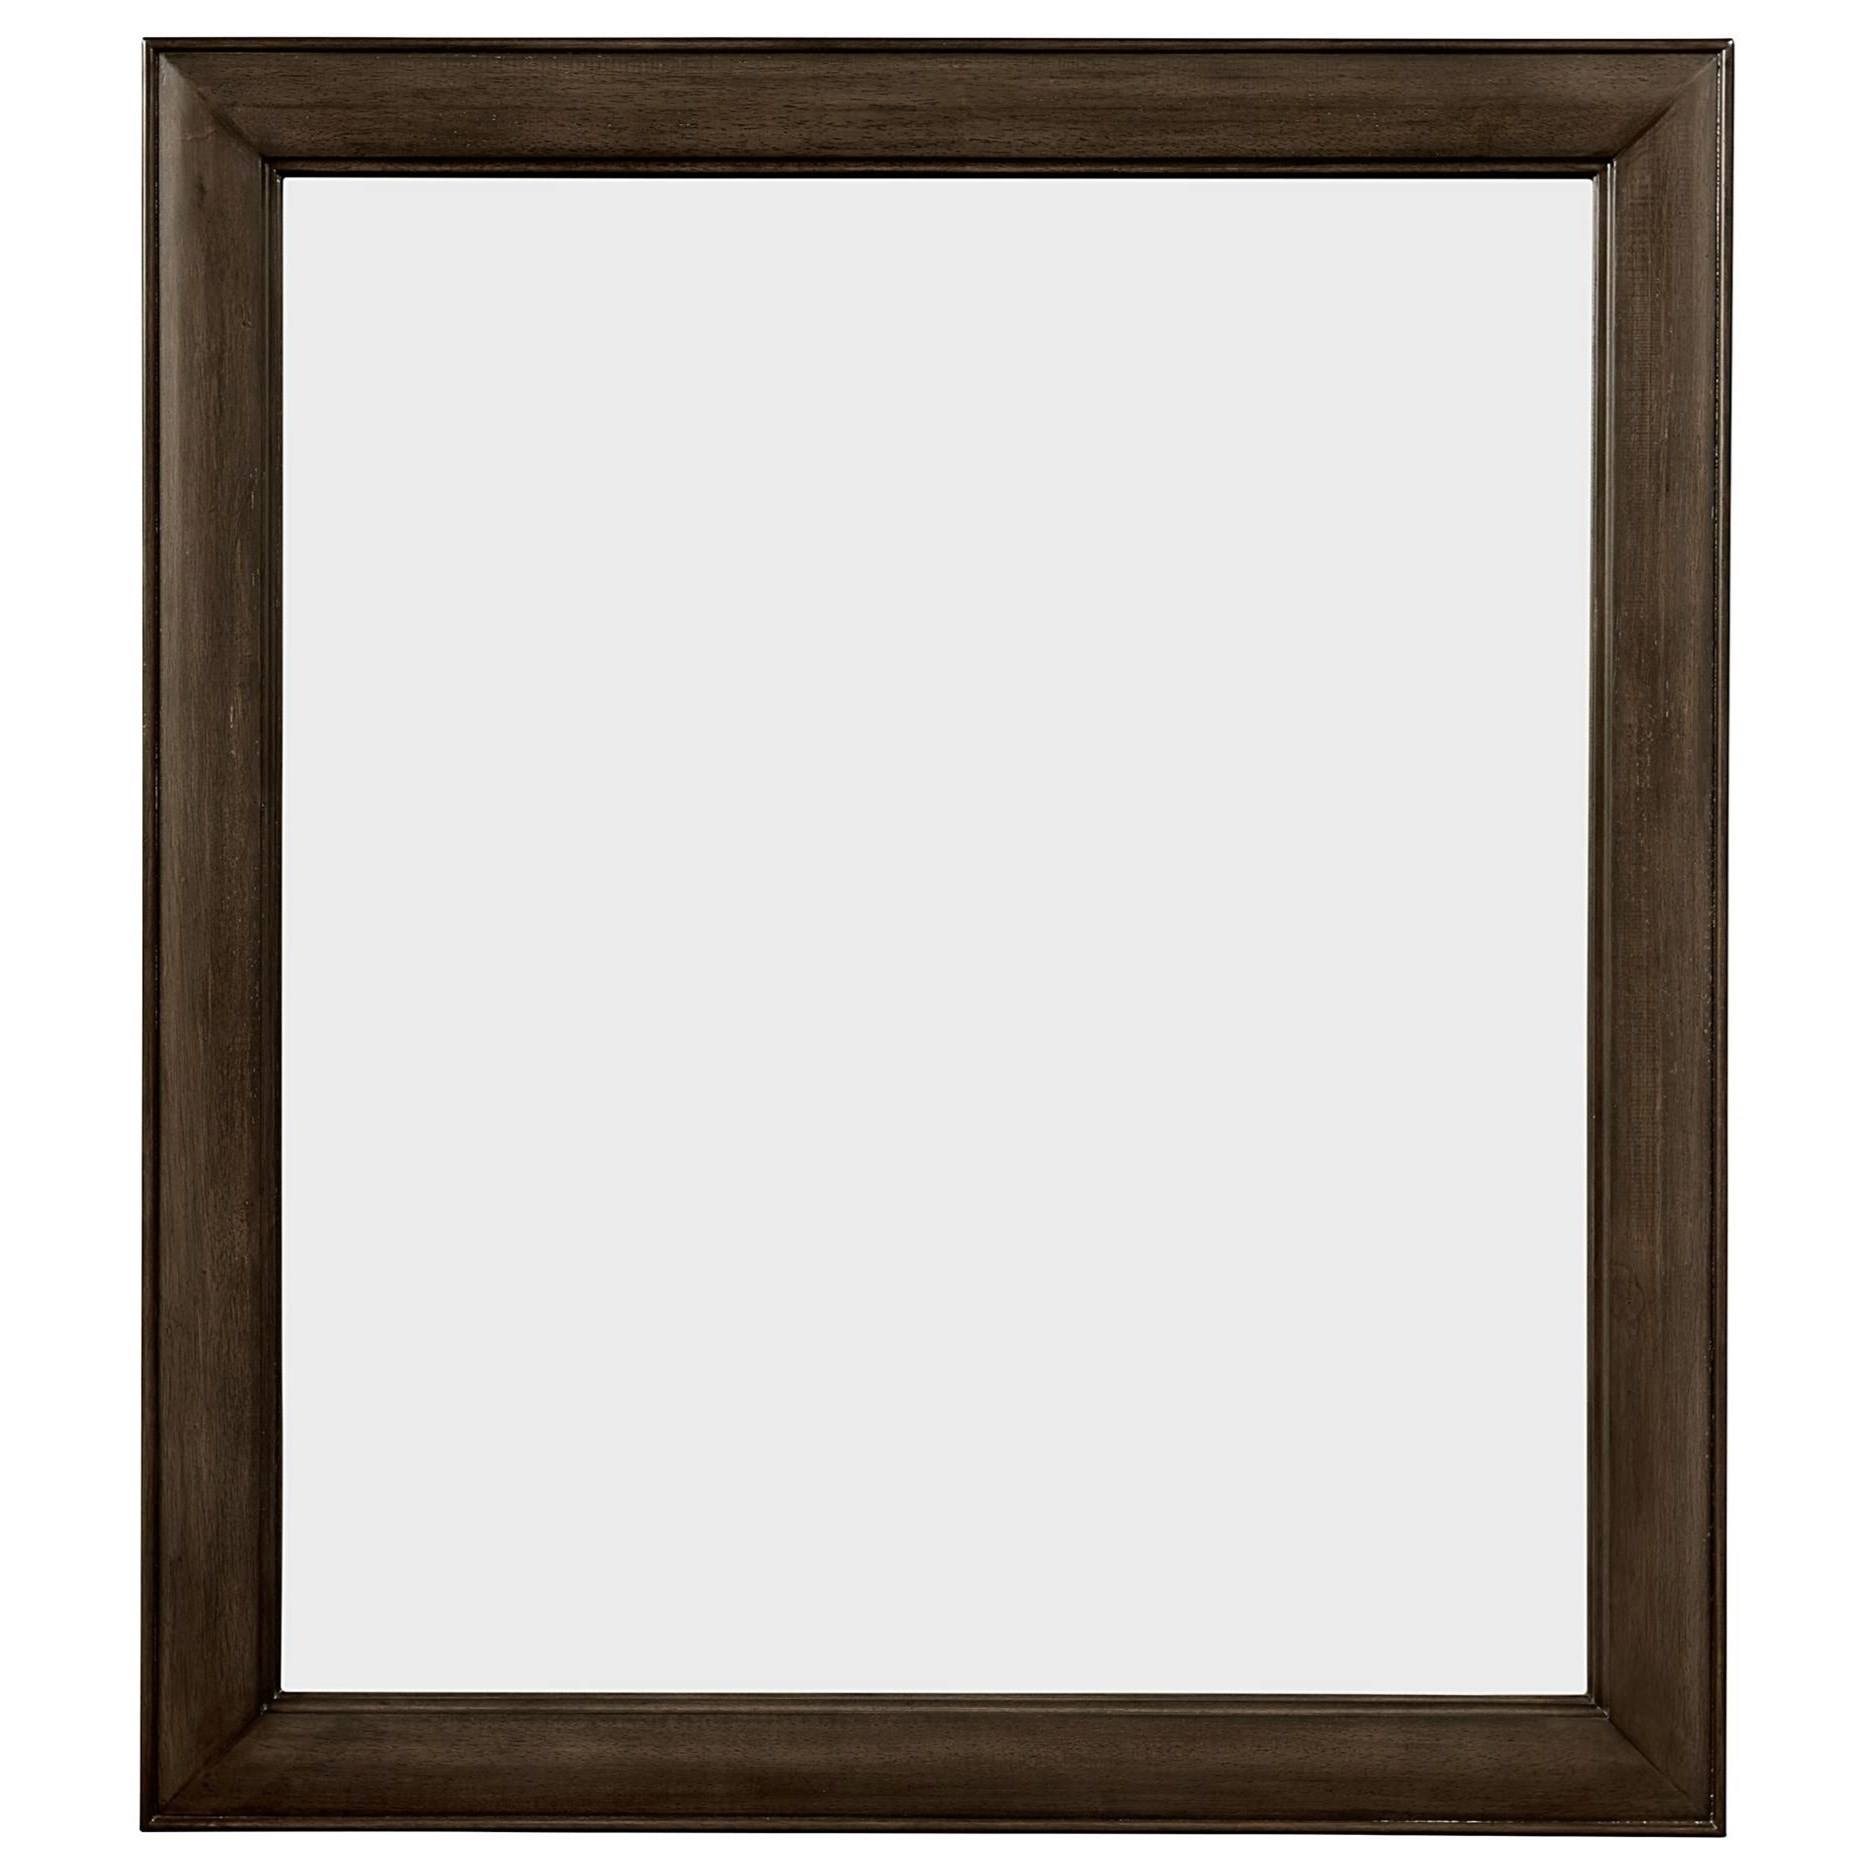 Stone & Leigh Furniture Chelsea Square Mirror - Item Number: 584-13-30